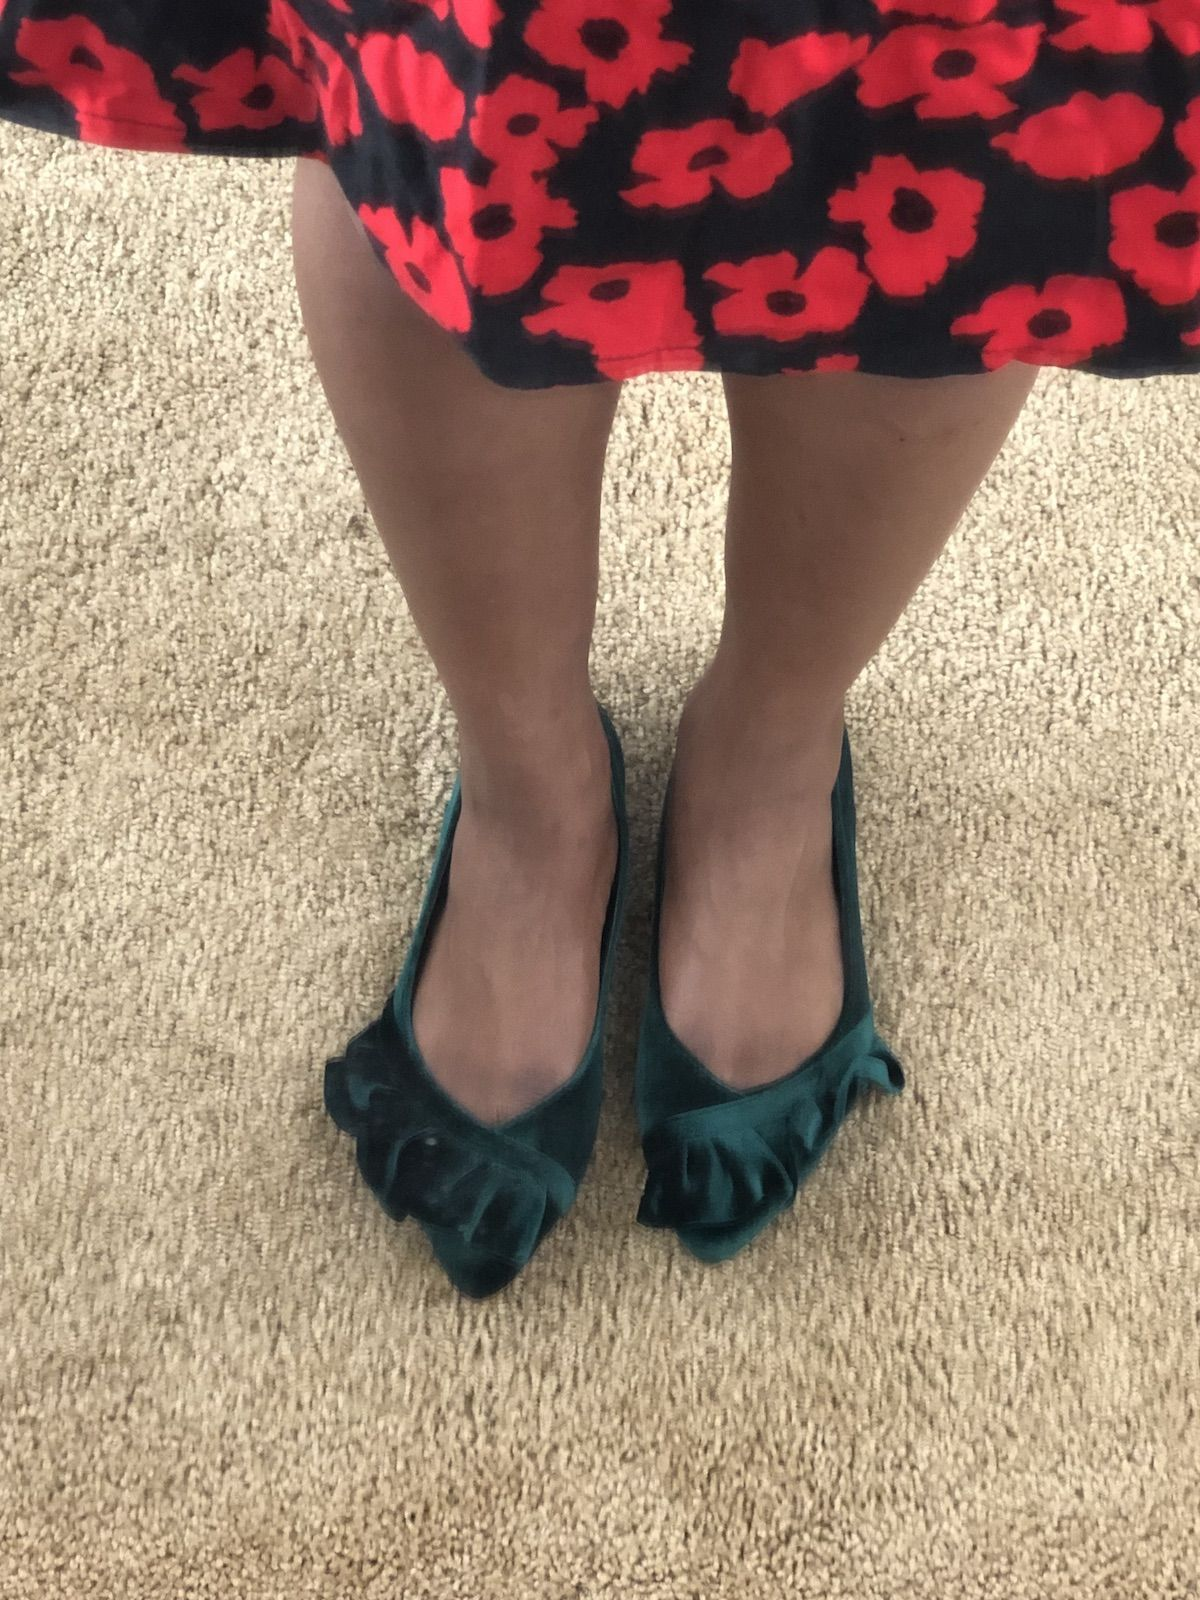 Is JustFab Legit A MustRead JustFab Review My Experience A review of JustFab shoes Is it worth the hype or worth your money I spent my money so you wouldnt have to Read m...